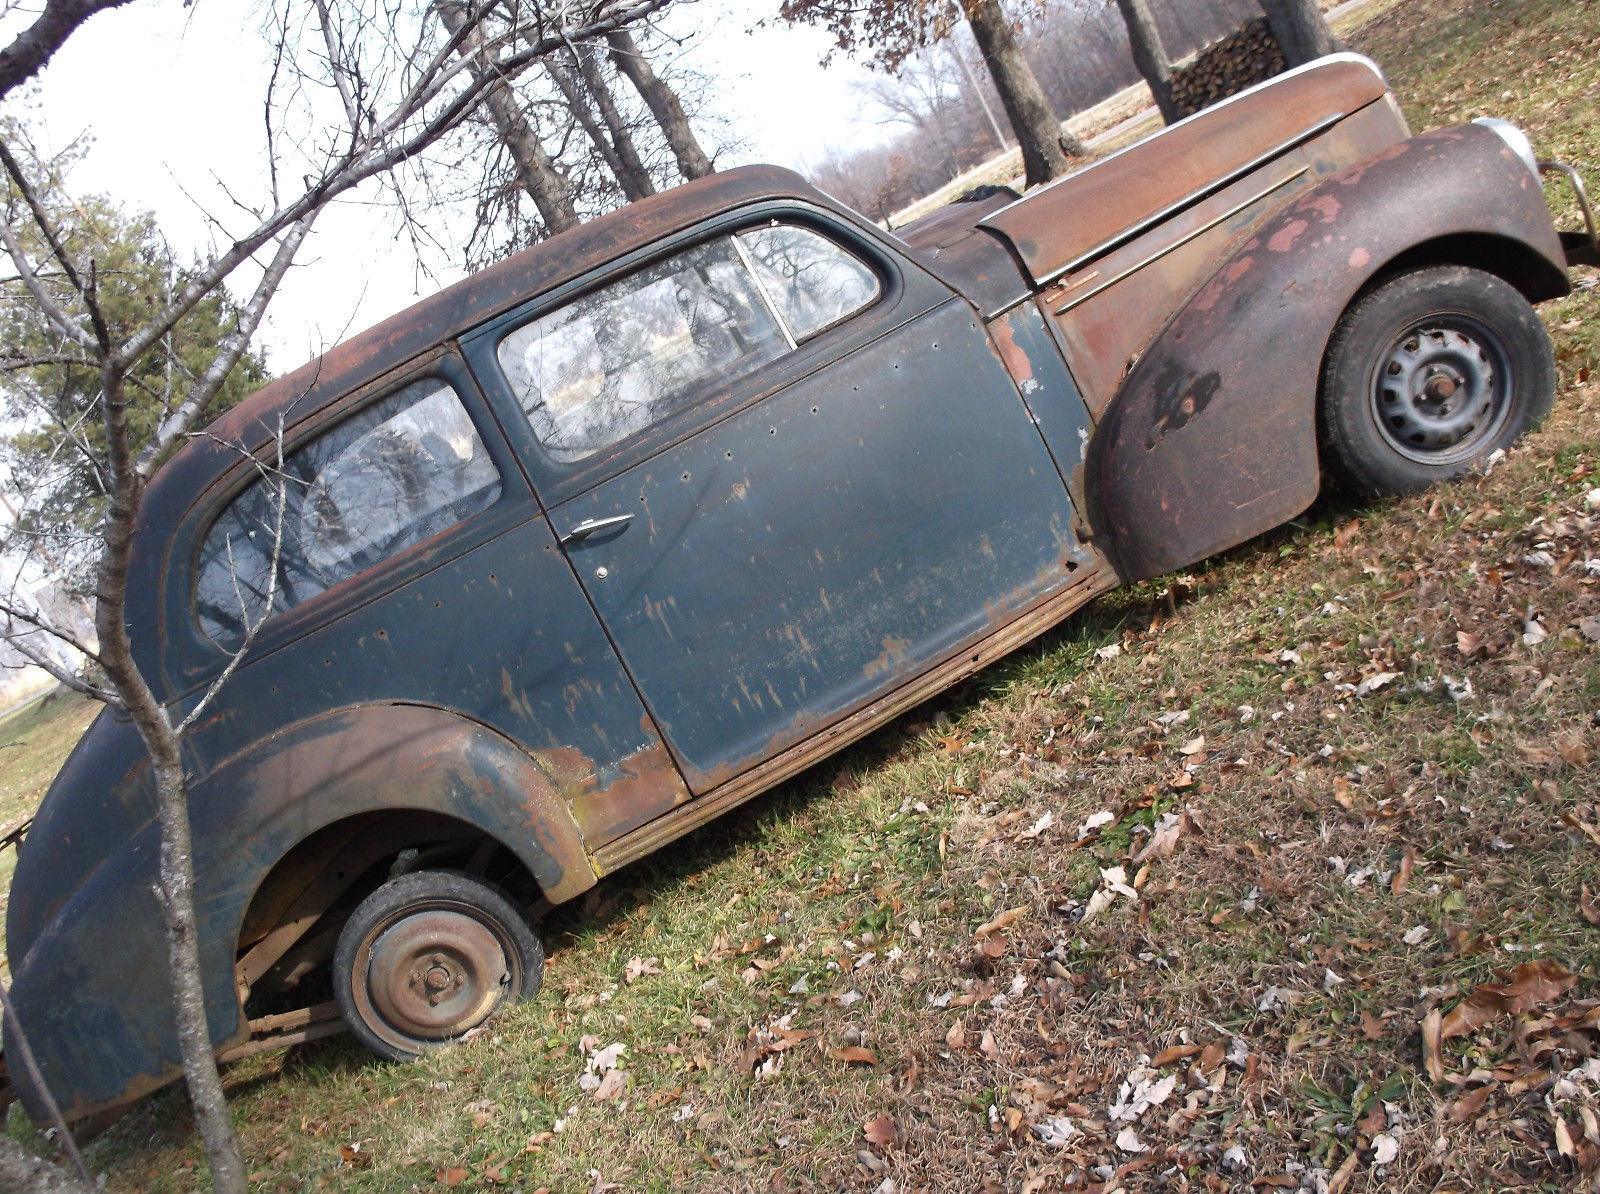 40 STUDEBAKER 2 DR BARN FIND RAT ROD VINTAGE STOCK CAR PROJECT GASSER PARTS